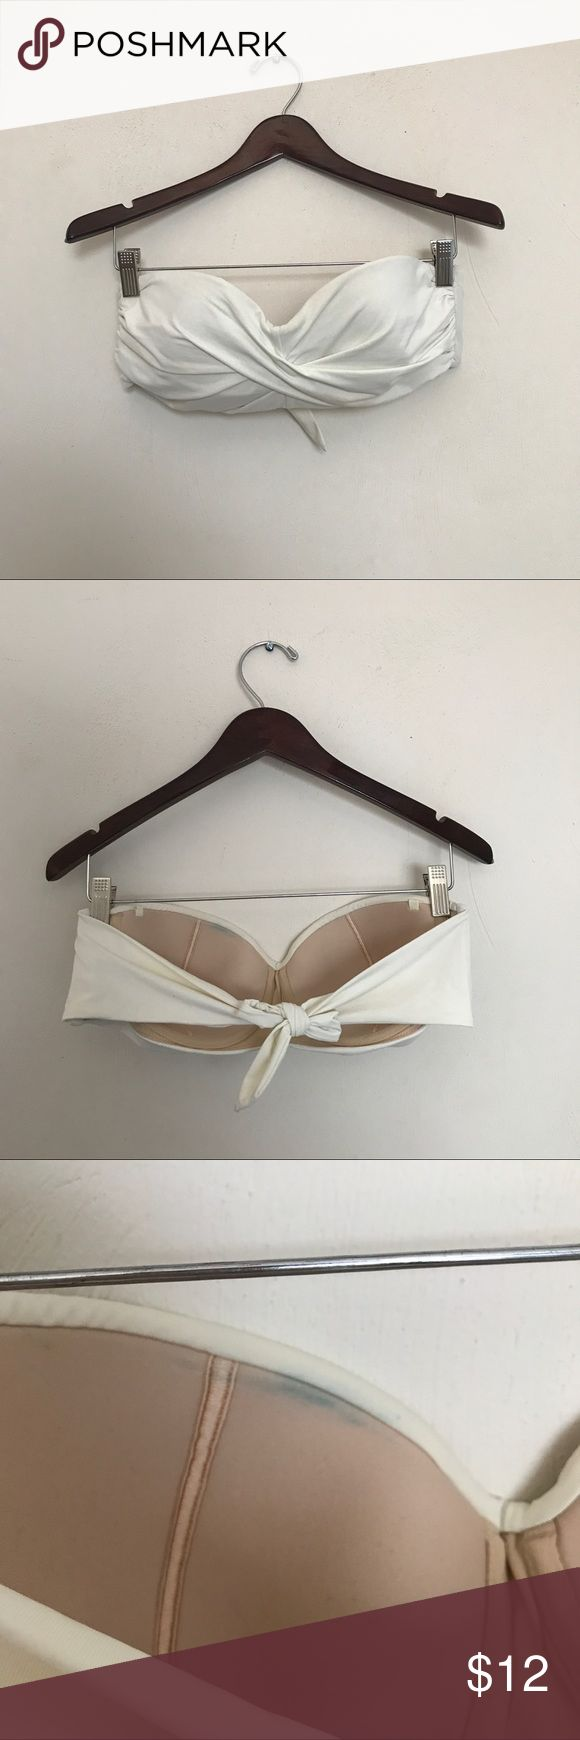 LANDS END Bikini Top Cream bandeau bikini top from Lands End in size 14.  Underwire and side boning.  Neck strap not included.  Good used condition.  Blue stain inside as pictured. Lands' End Swim Bikinis